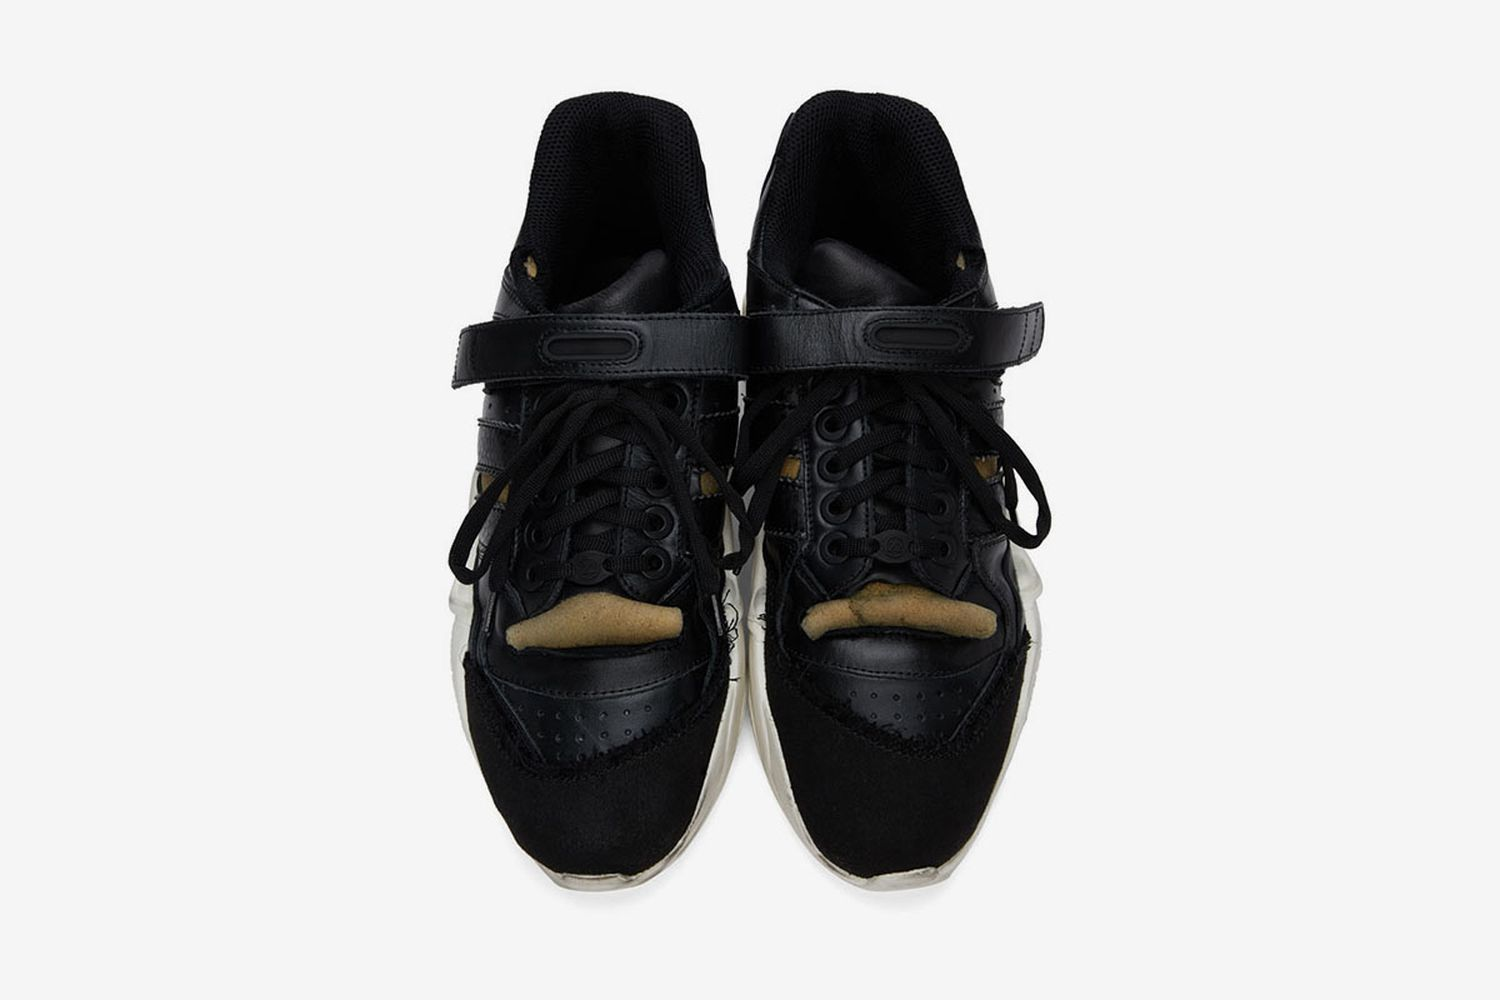 Retro-Fit Mid Sneakers